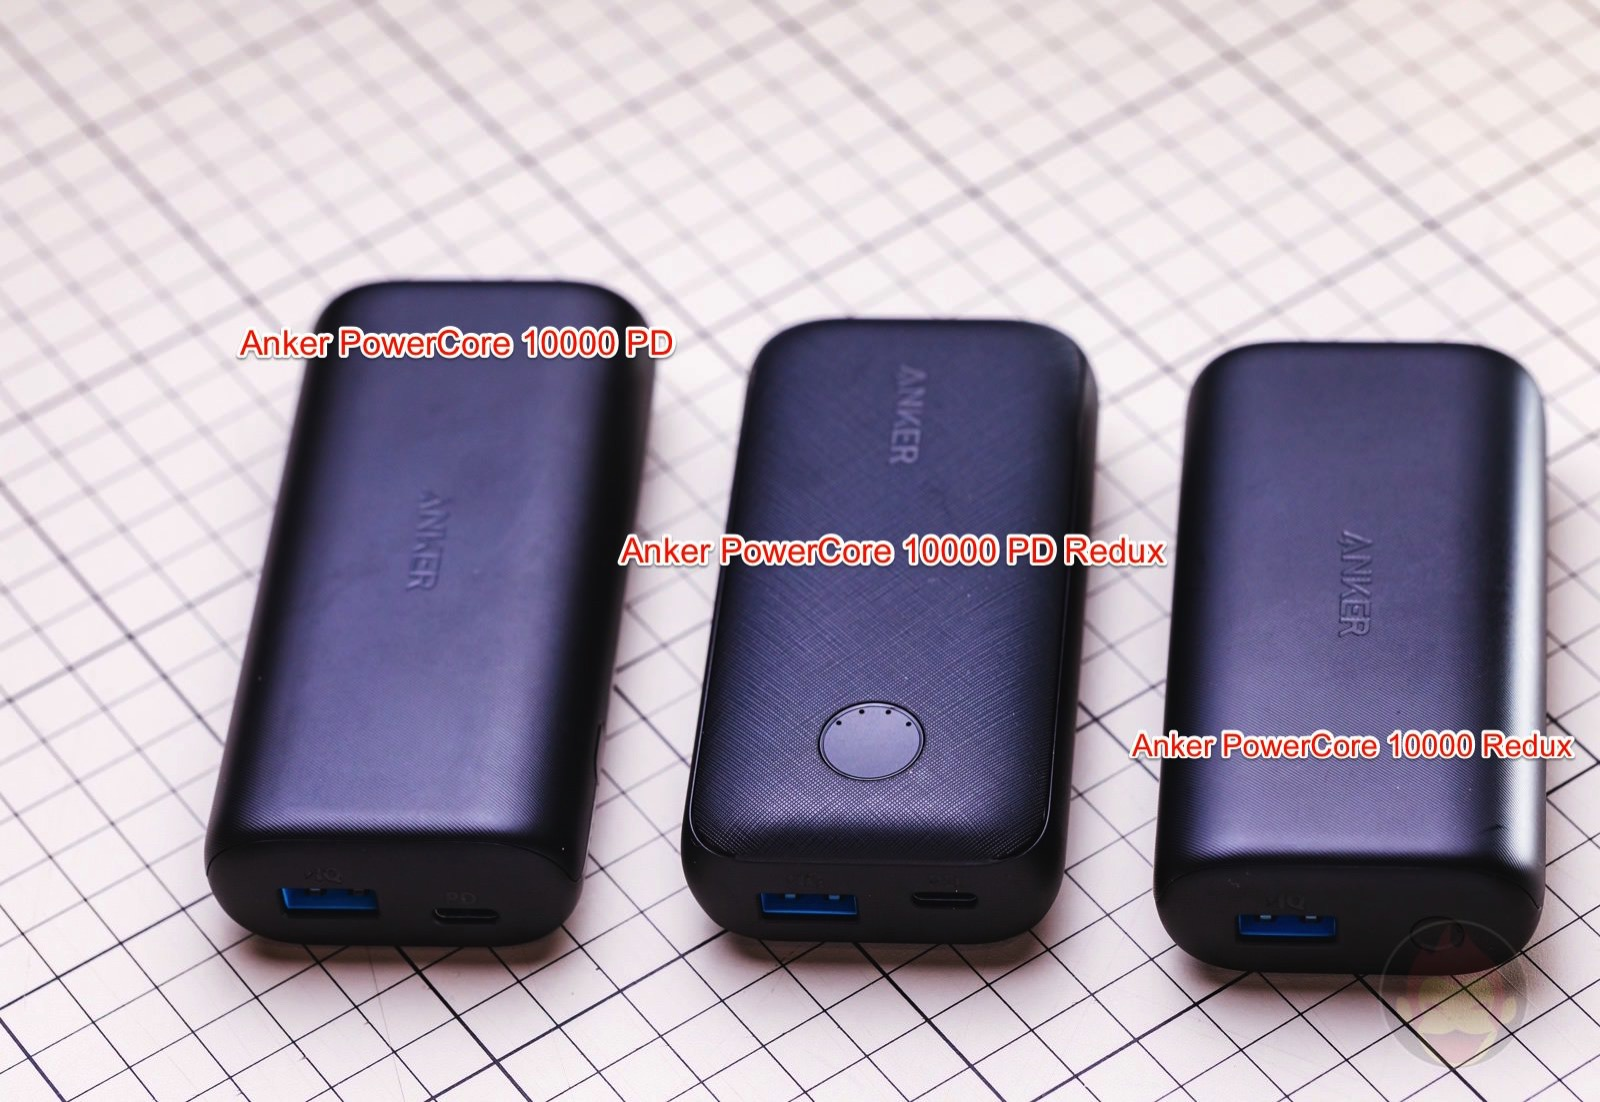 Anker-PowerCore-10000-PD-Redux-Review-24.jpg